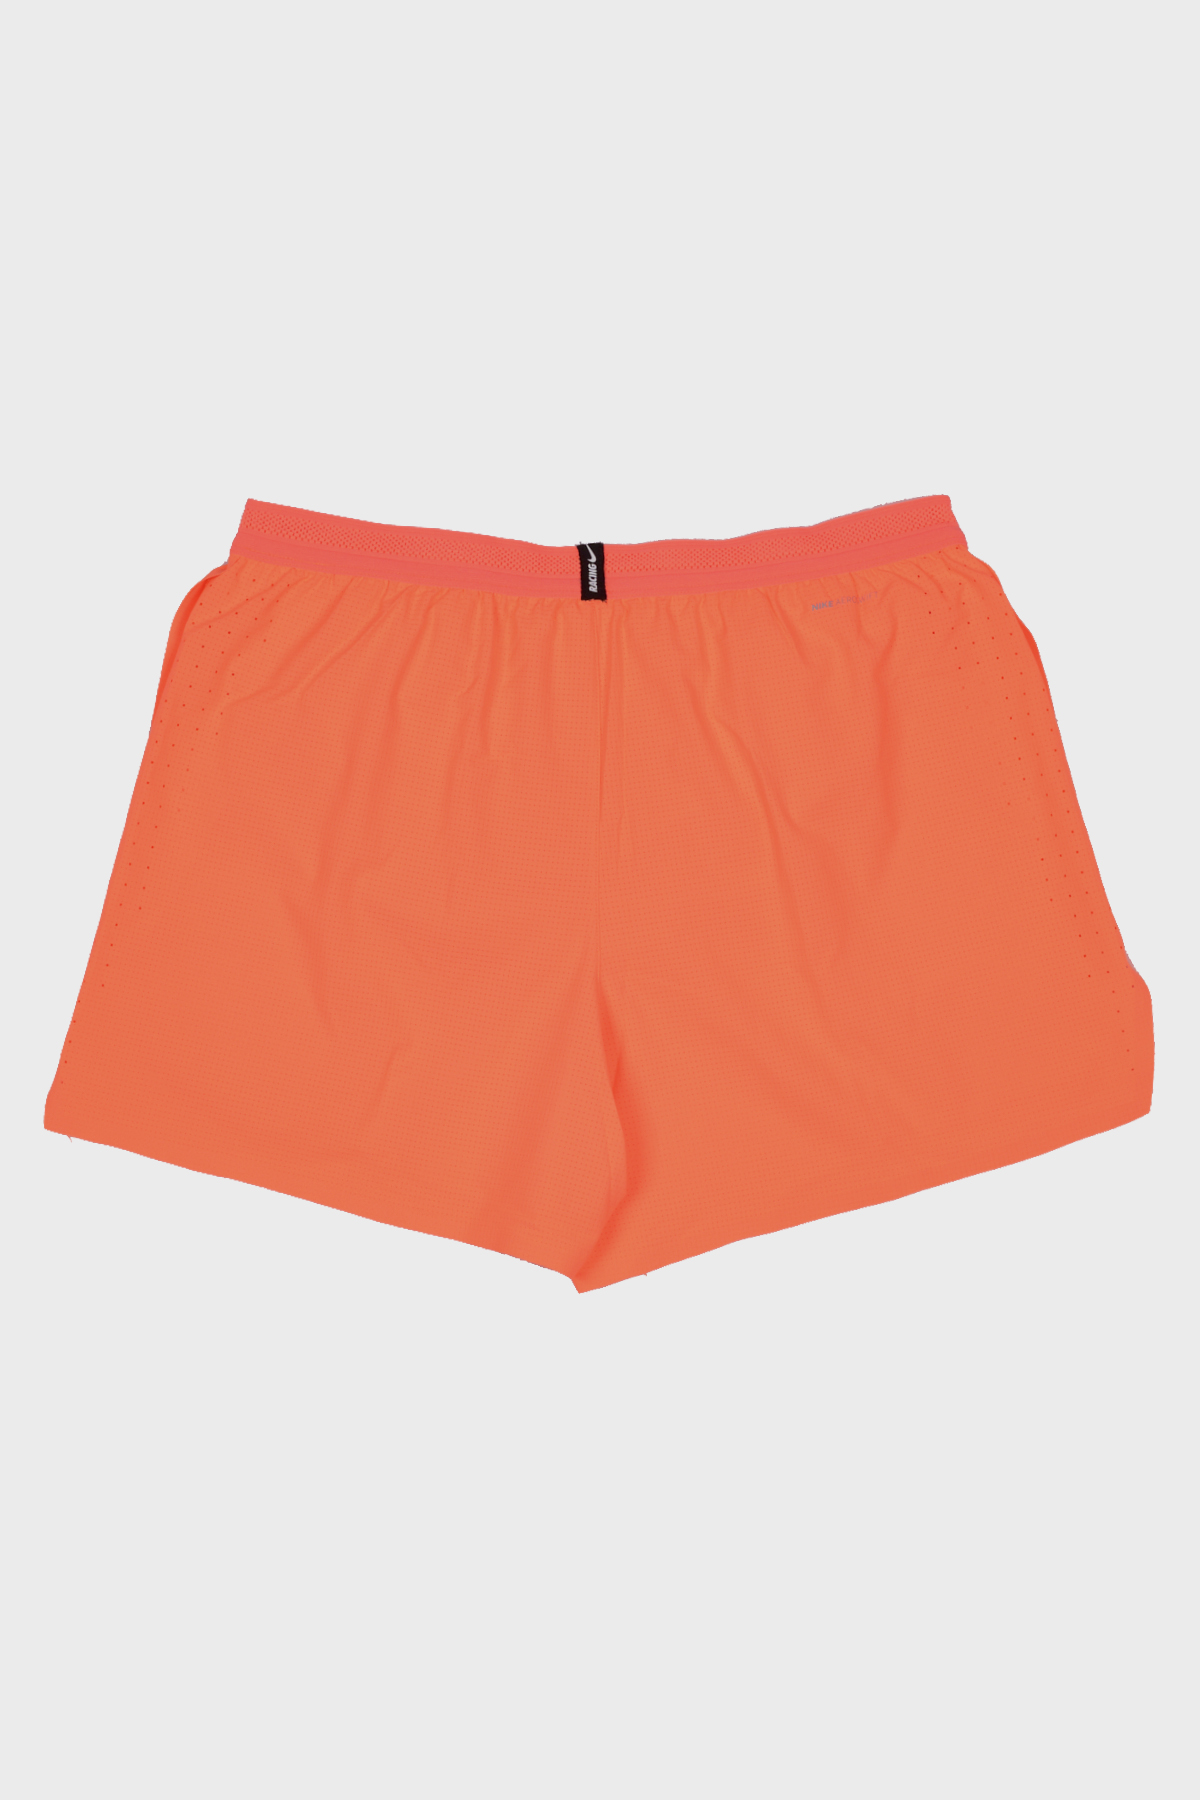 Nike - AeroSwift short - MANGO